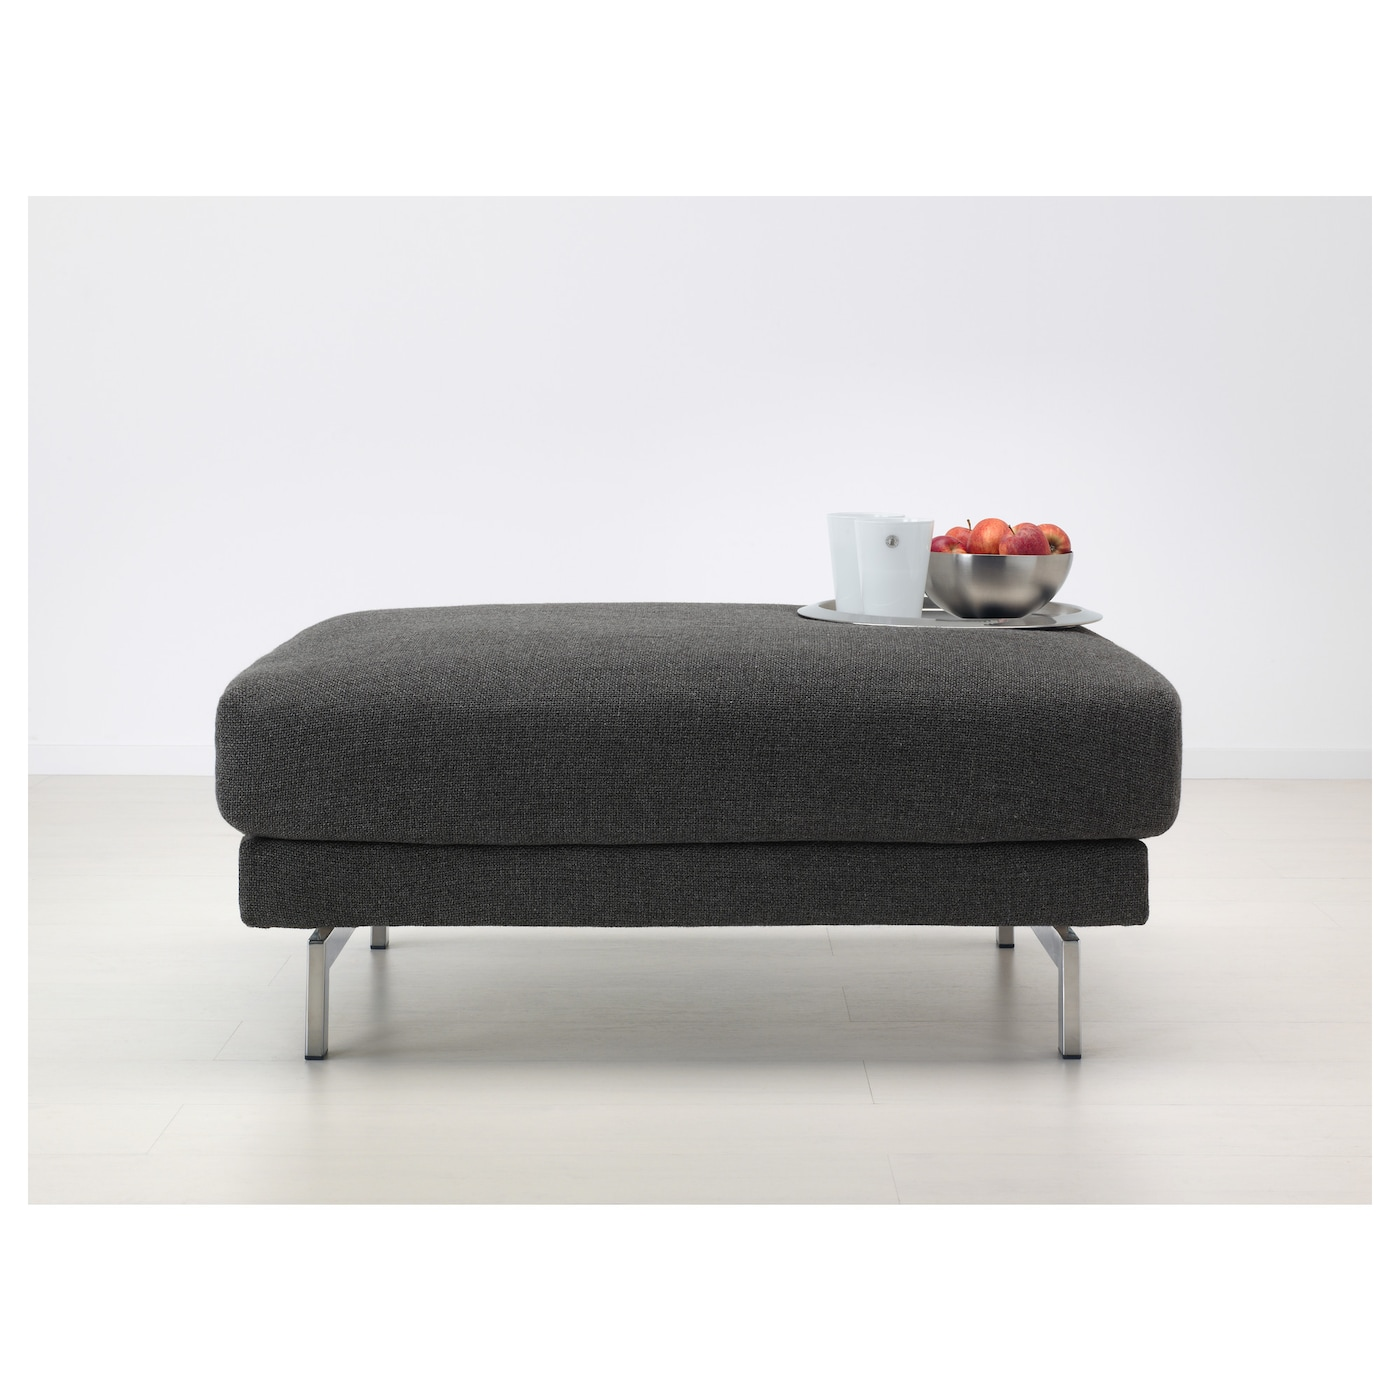 IKEA NOCKEBY footstool Heavy, hard-wearing fabric with structure, yarn dyed in different shades.